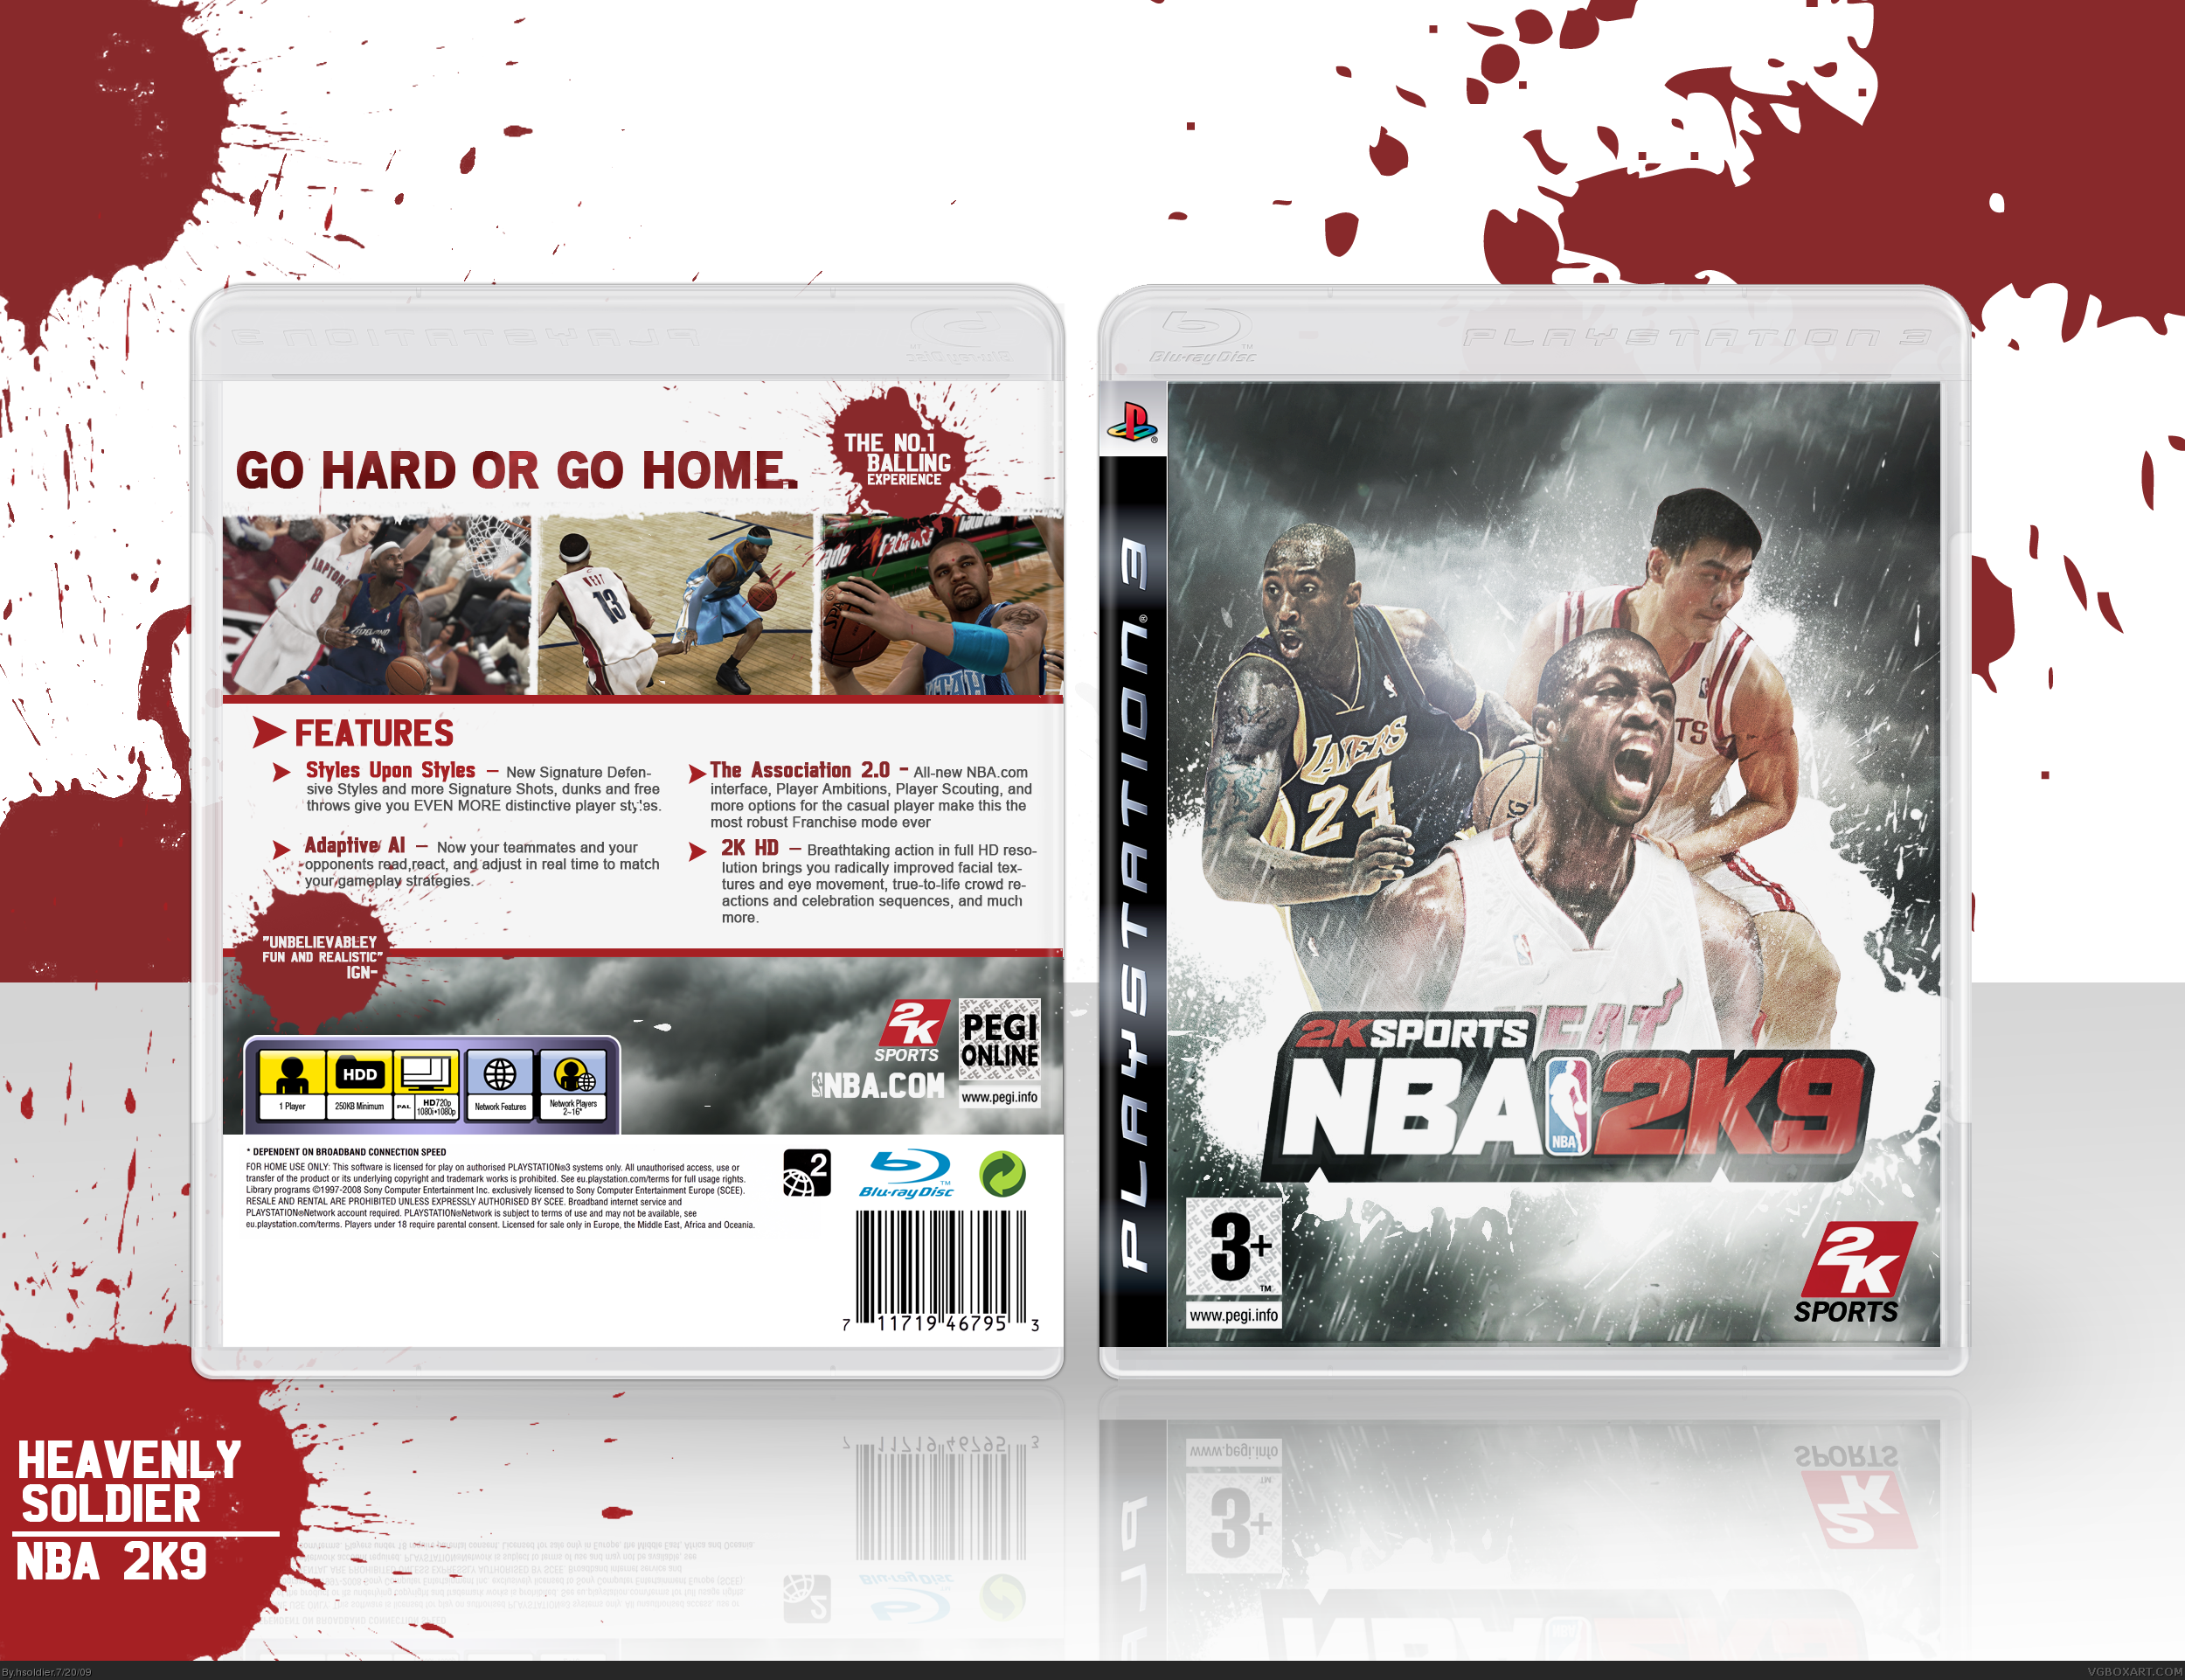 NBA 2K9 box cover